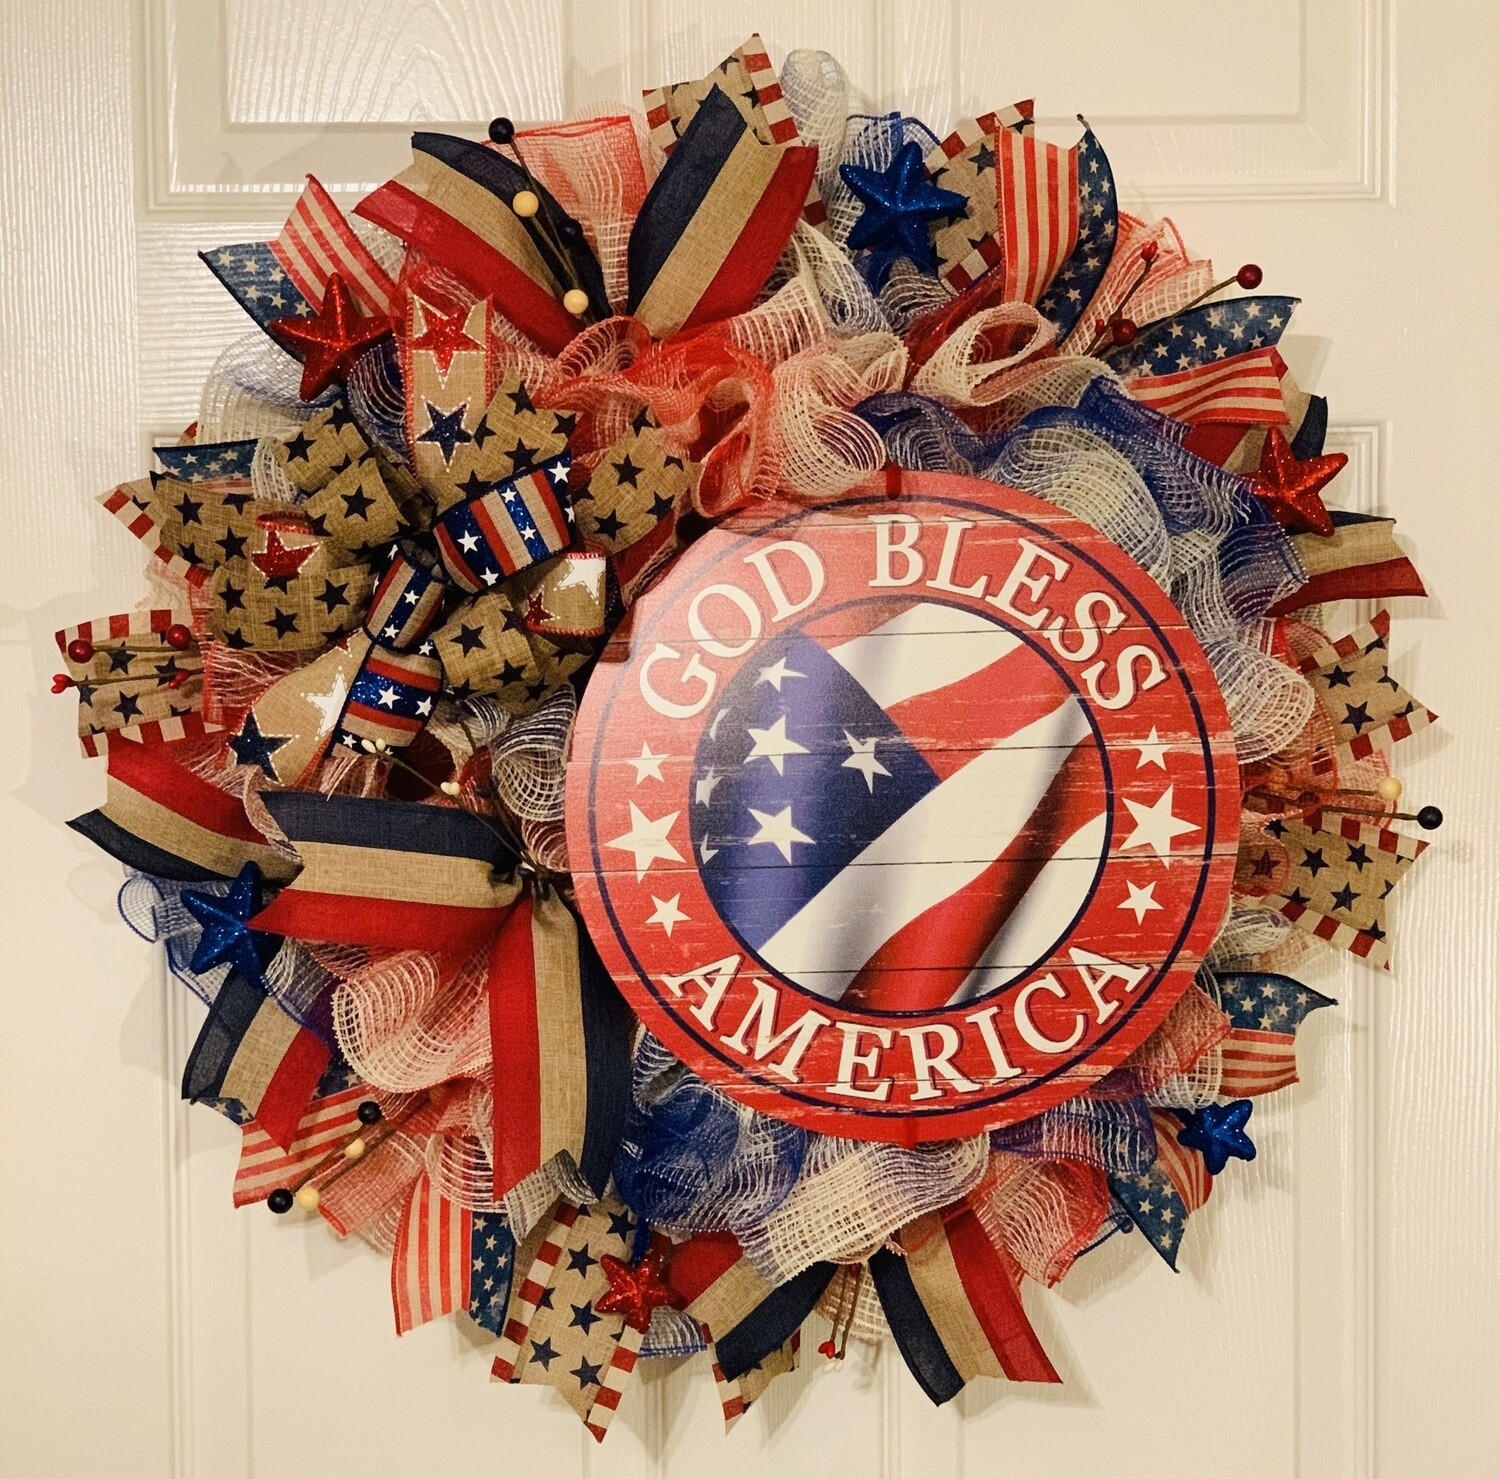 Patriotic Decor, God Bless America Sign, Red White and Blue Wreath, Americana Wreath for For Front Door, July 4th Wreath, A Touch of Faith